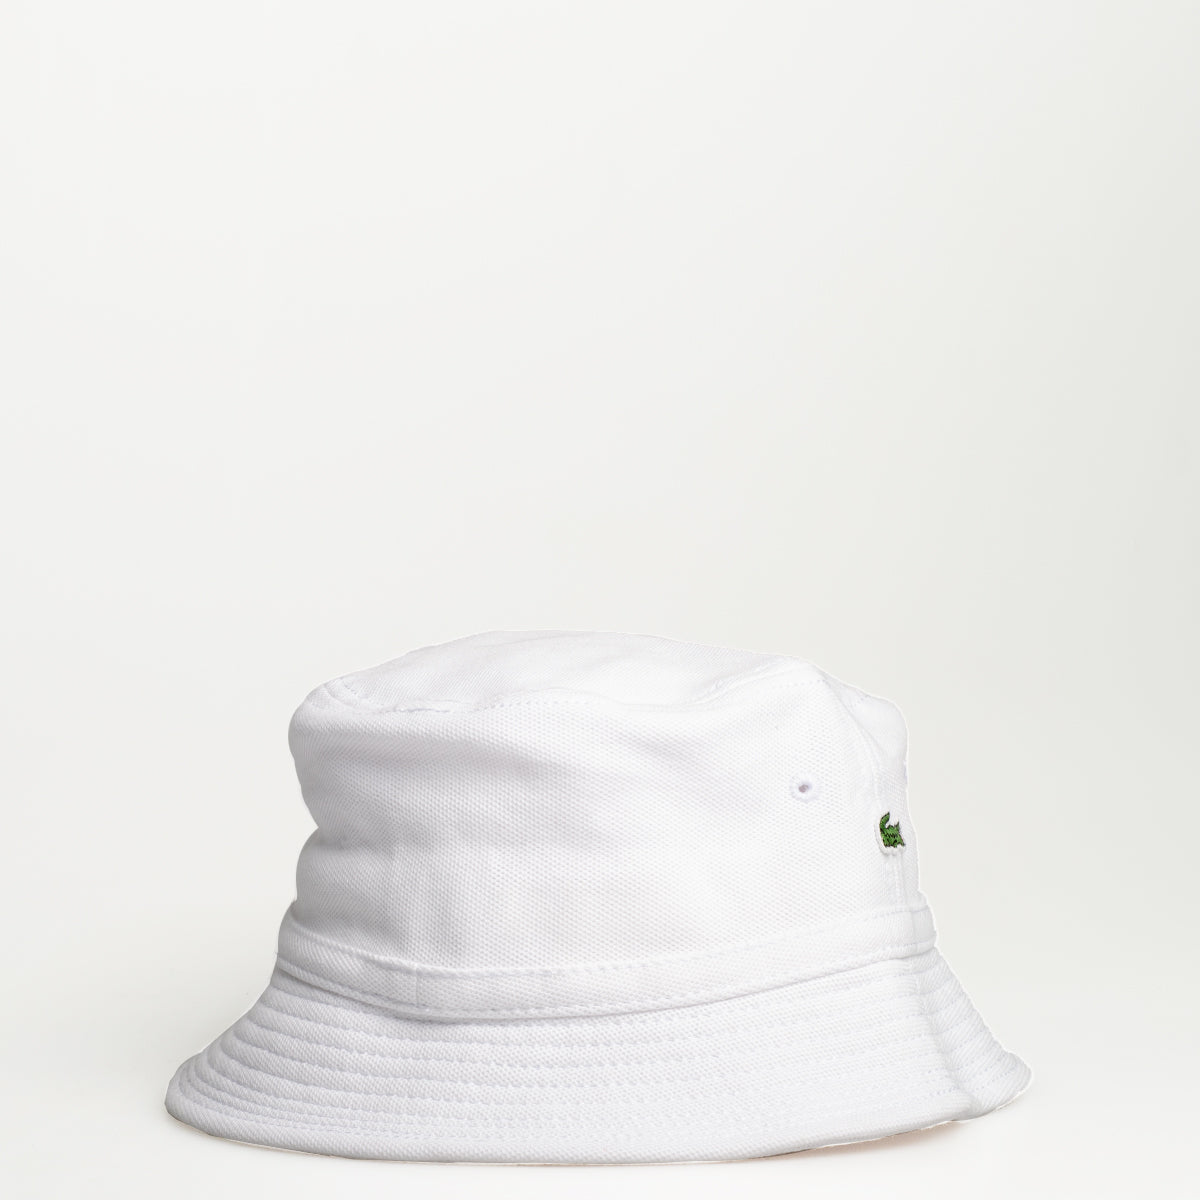 31f15ee267774 Men s Lacoste Cotton Piqué Bucket Hat White – Chicago City Sports